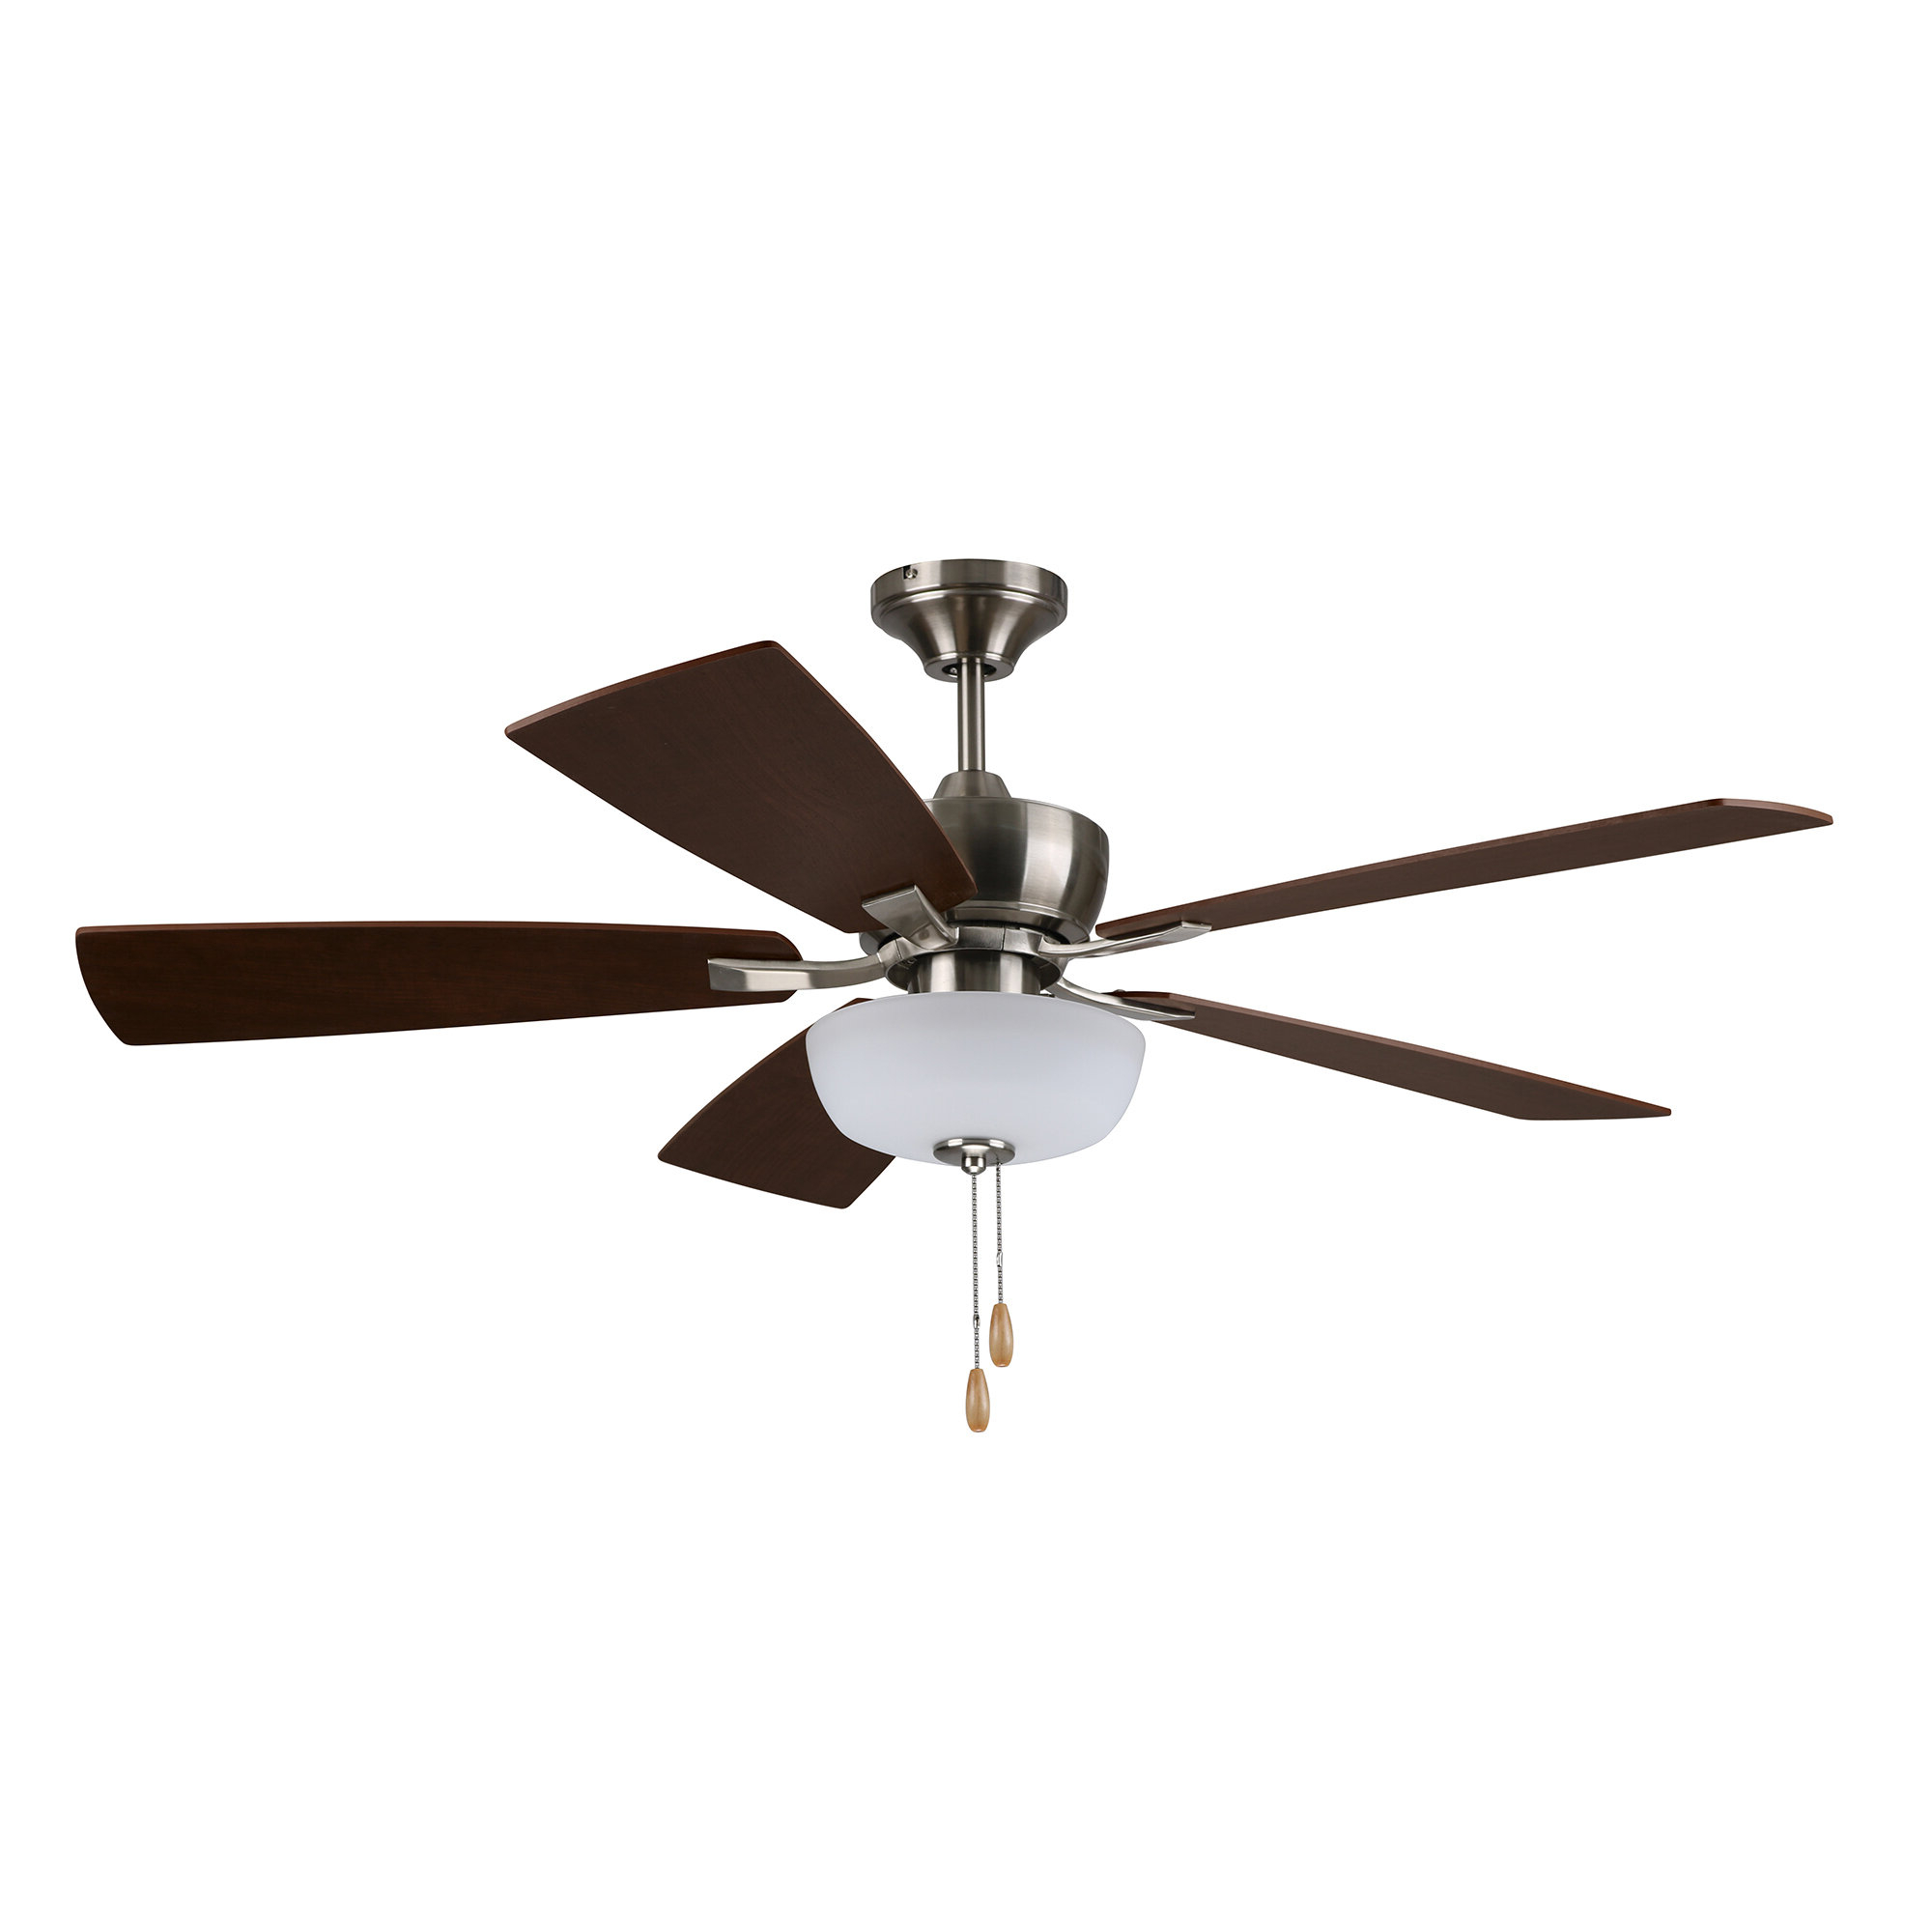 "Crumbley 5 Blade Ceiling Fans With Regard To Newest 52"" Shafer Tri Mount 4 Blade Smart Ceiling Fan, Light Kit Included (View 8 of 20)"